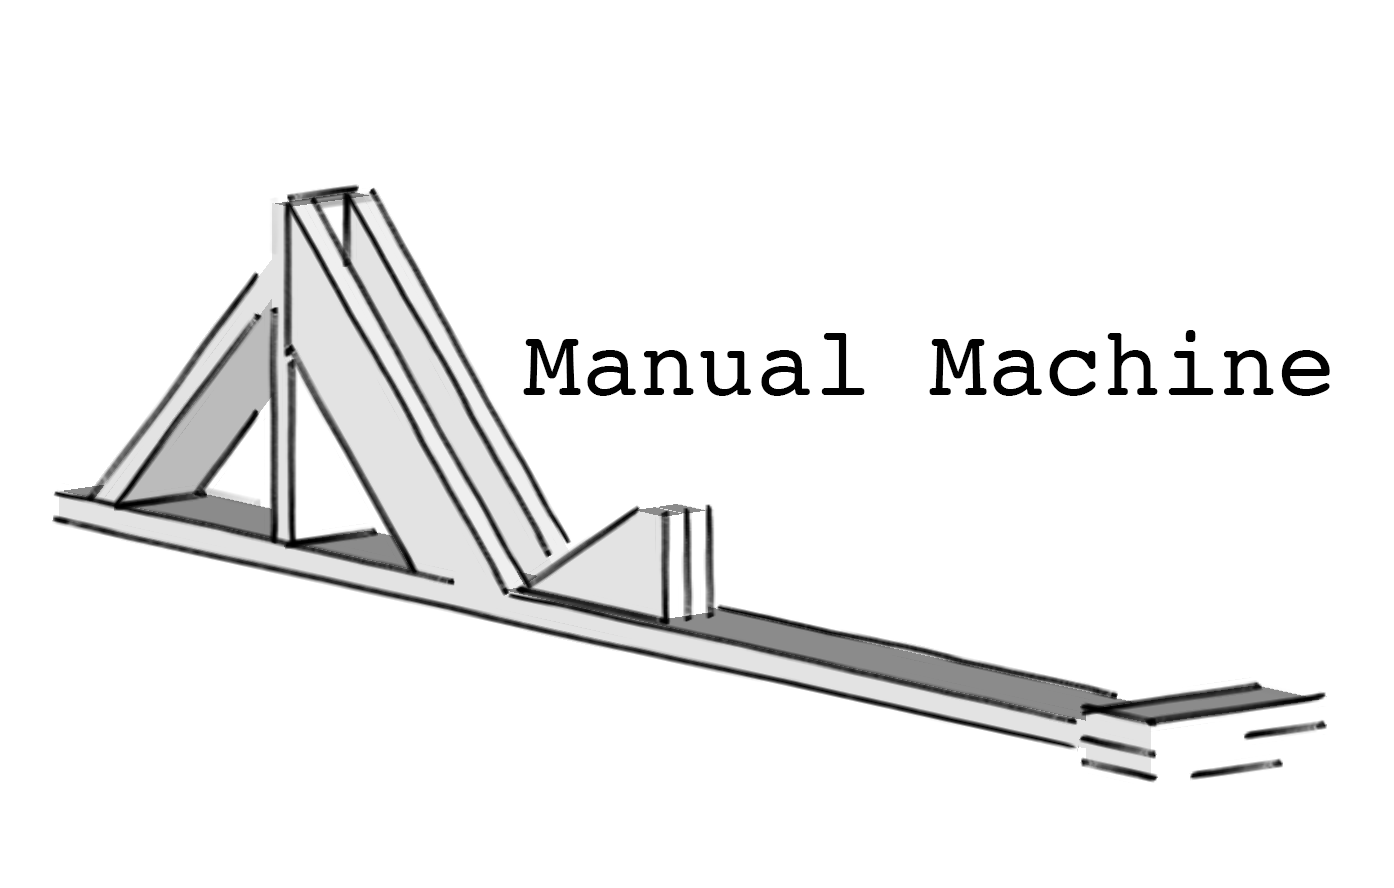 Manual Machine copy.png